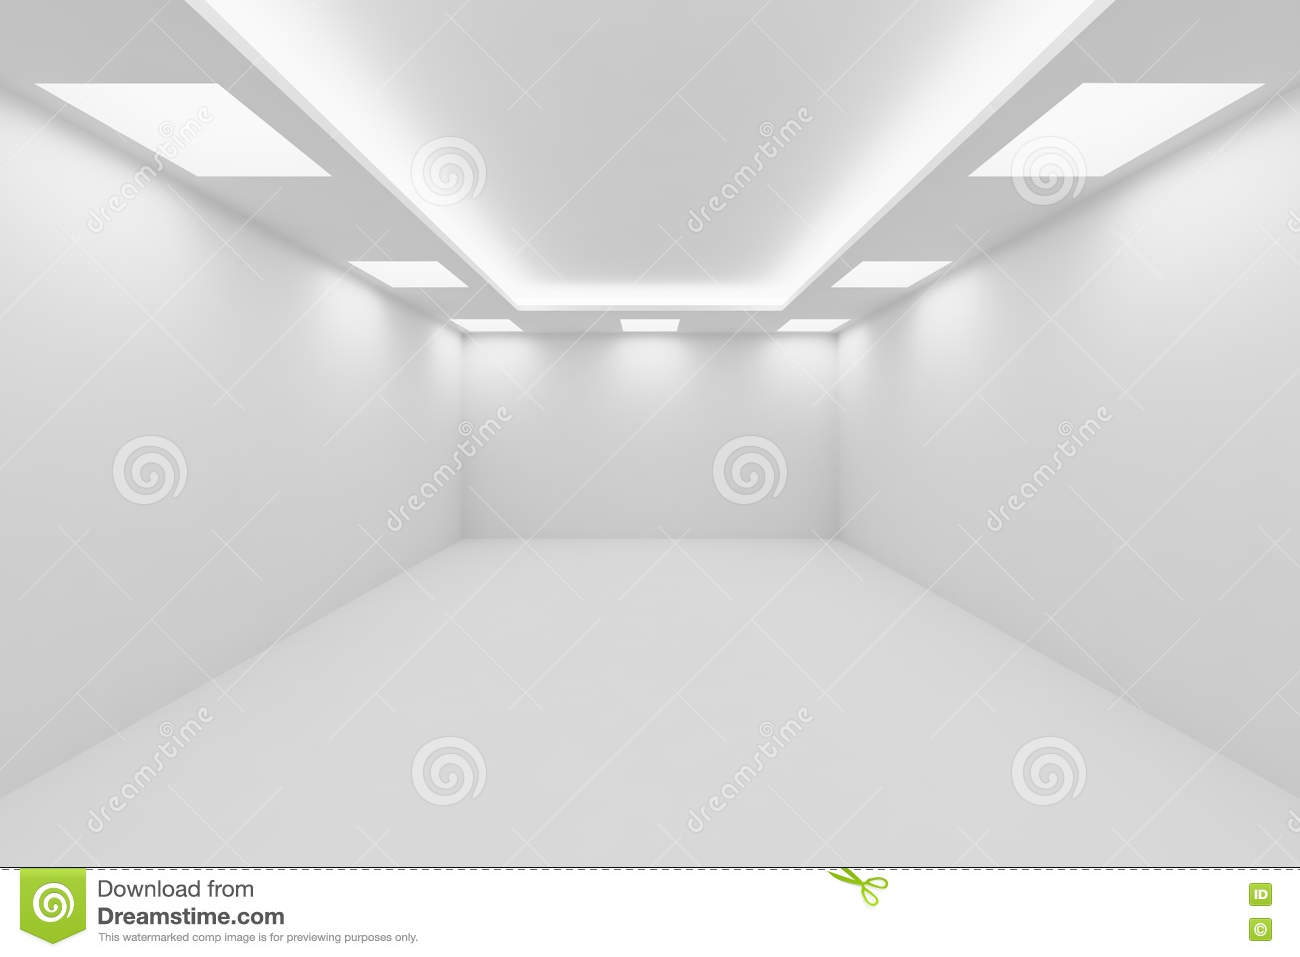 Empty White Room With Square Ceiling Lights Perspective